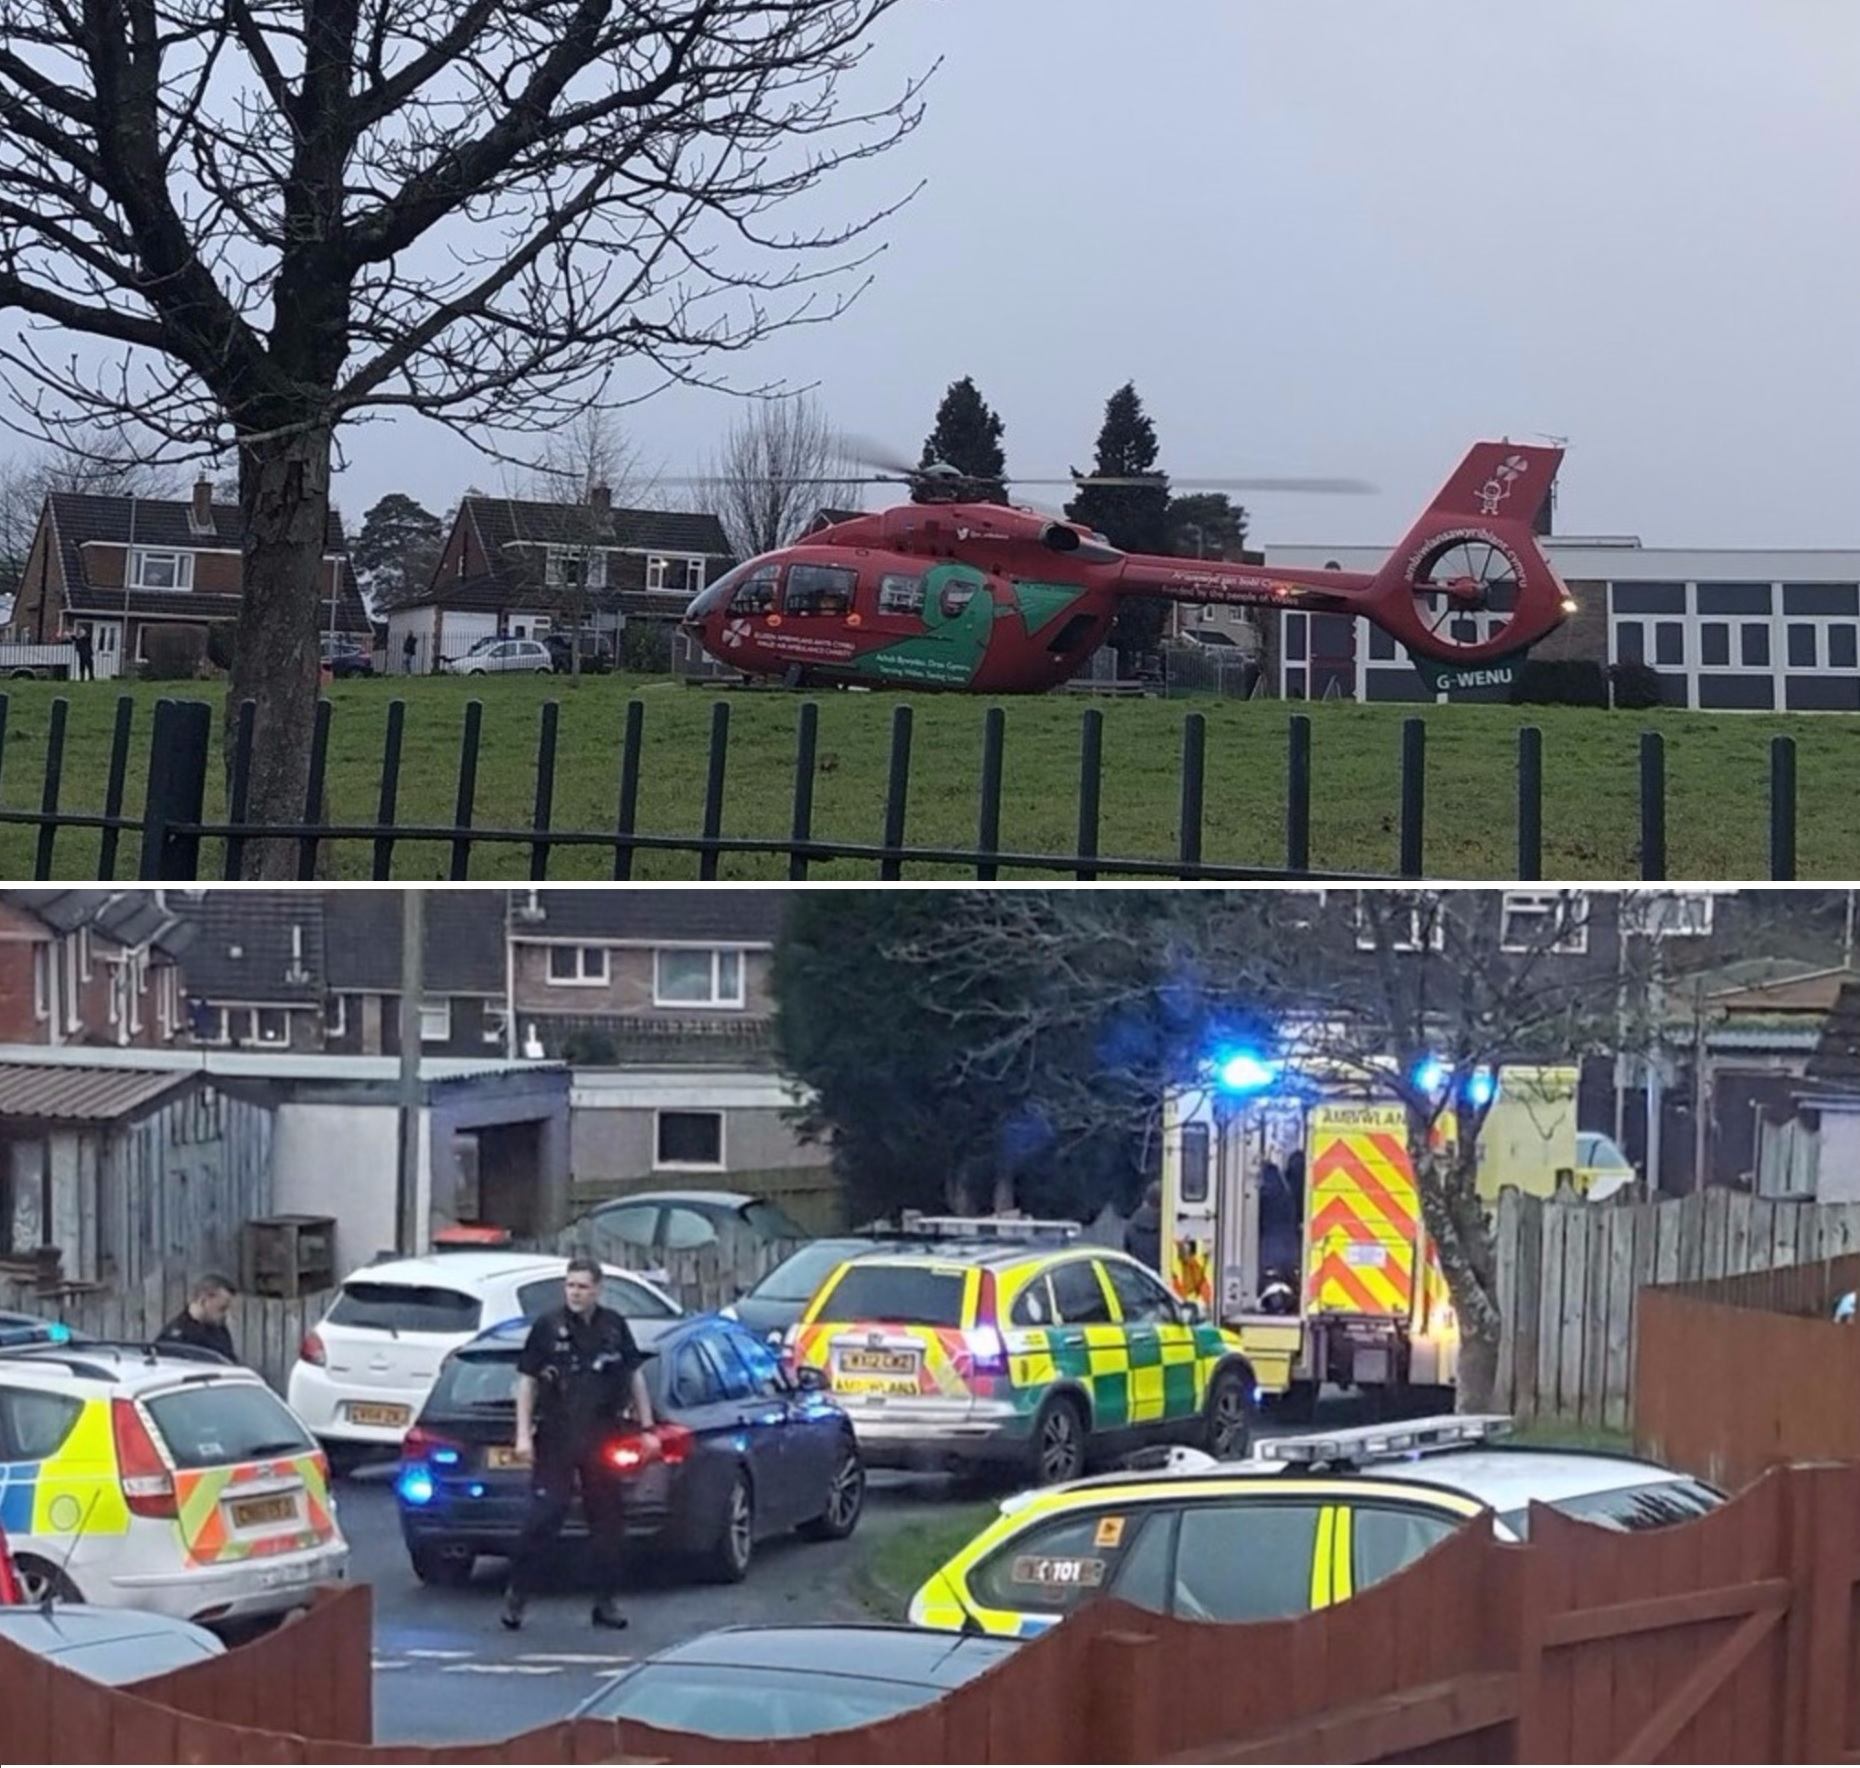 Death of boy confirmed after heavy police presence and air ambulance called to Newport street